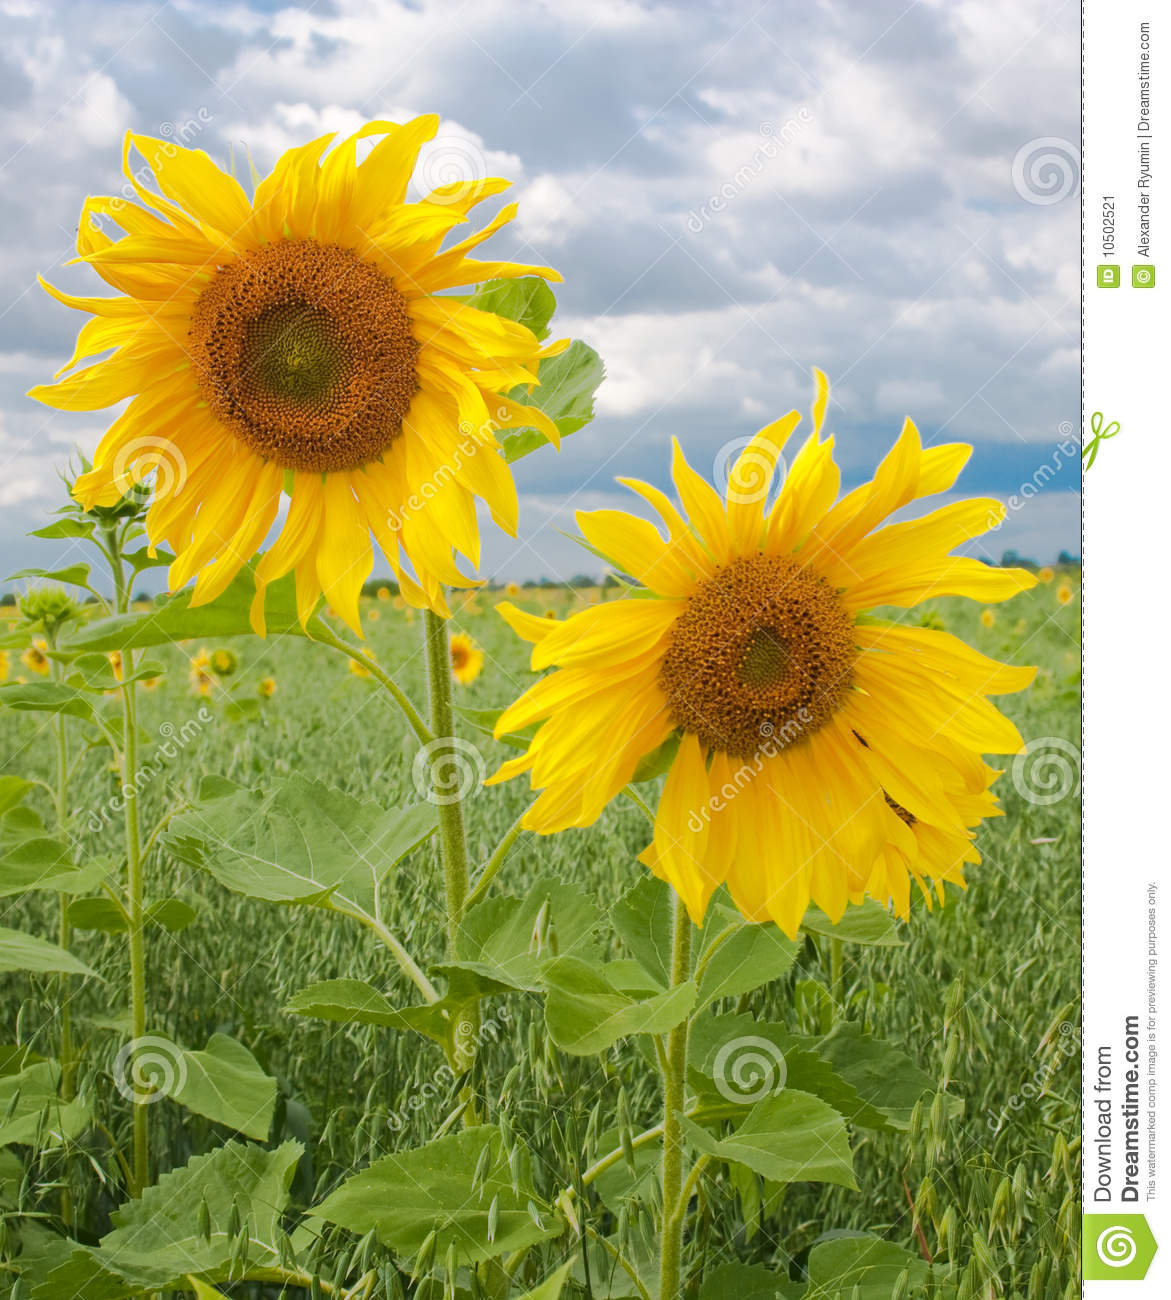 Two sunflowers stock image. Image of color, postcard ...